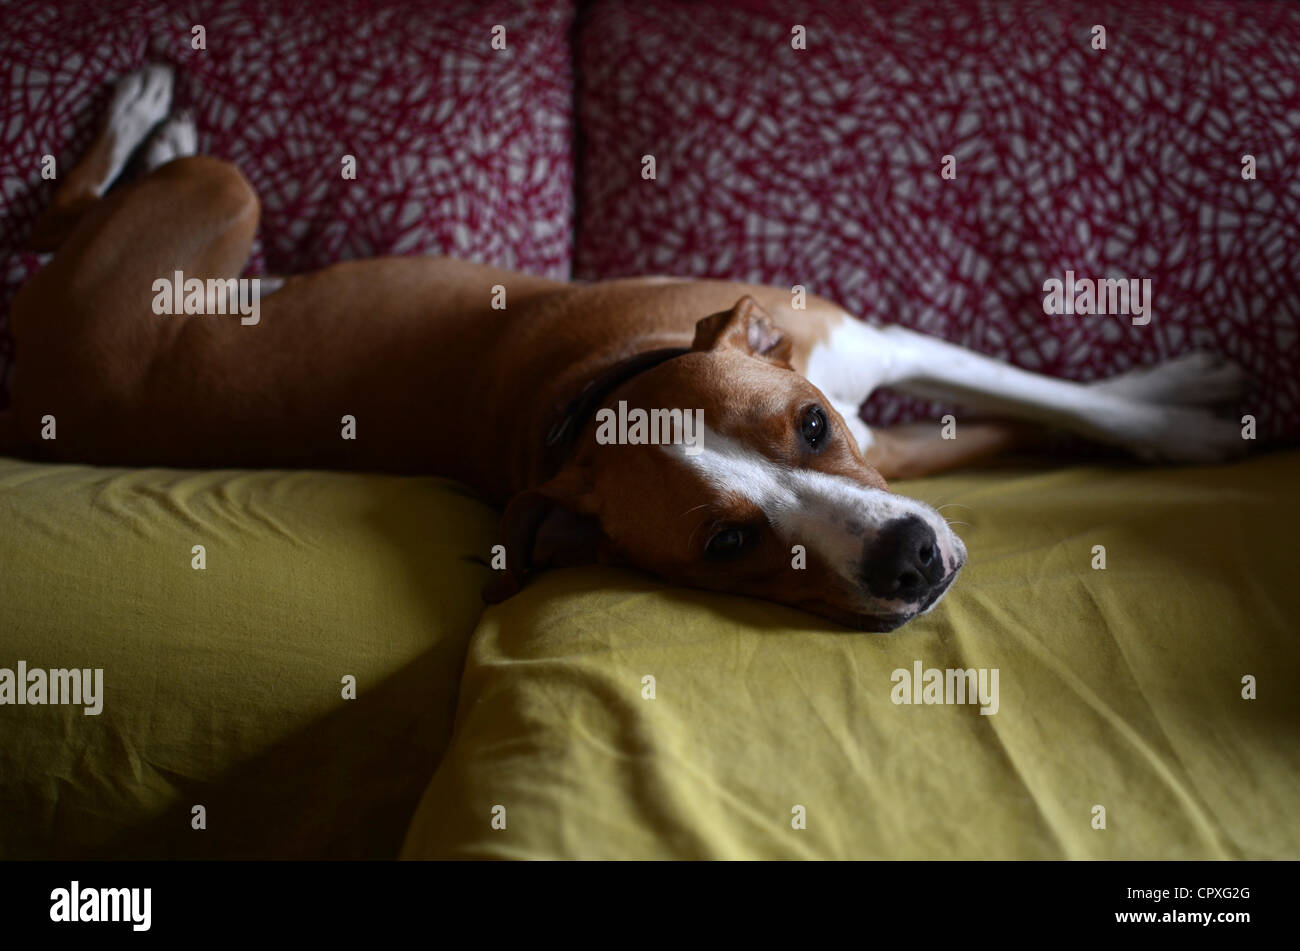 Dog laying on sofa in comical posture - Stock Image